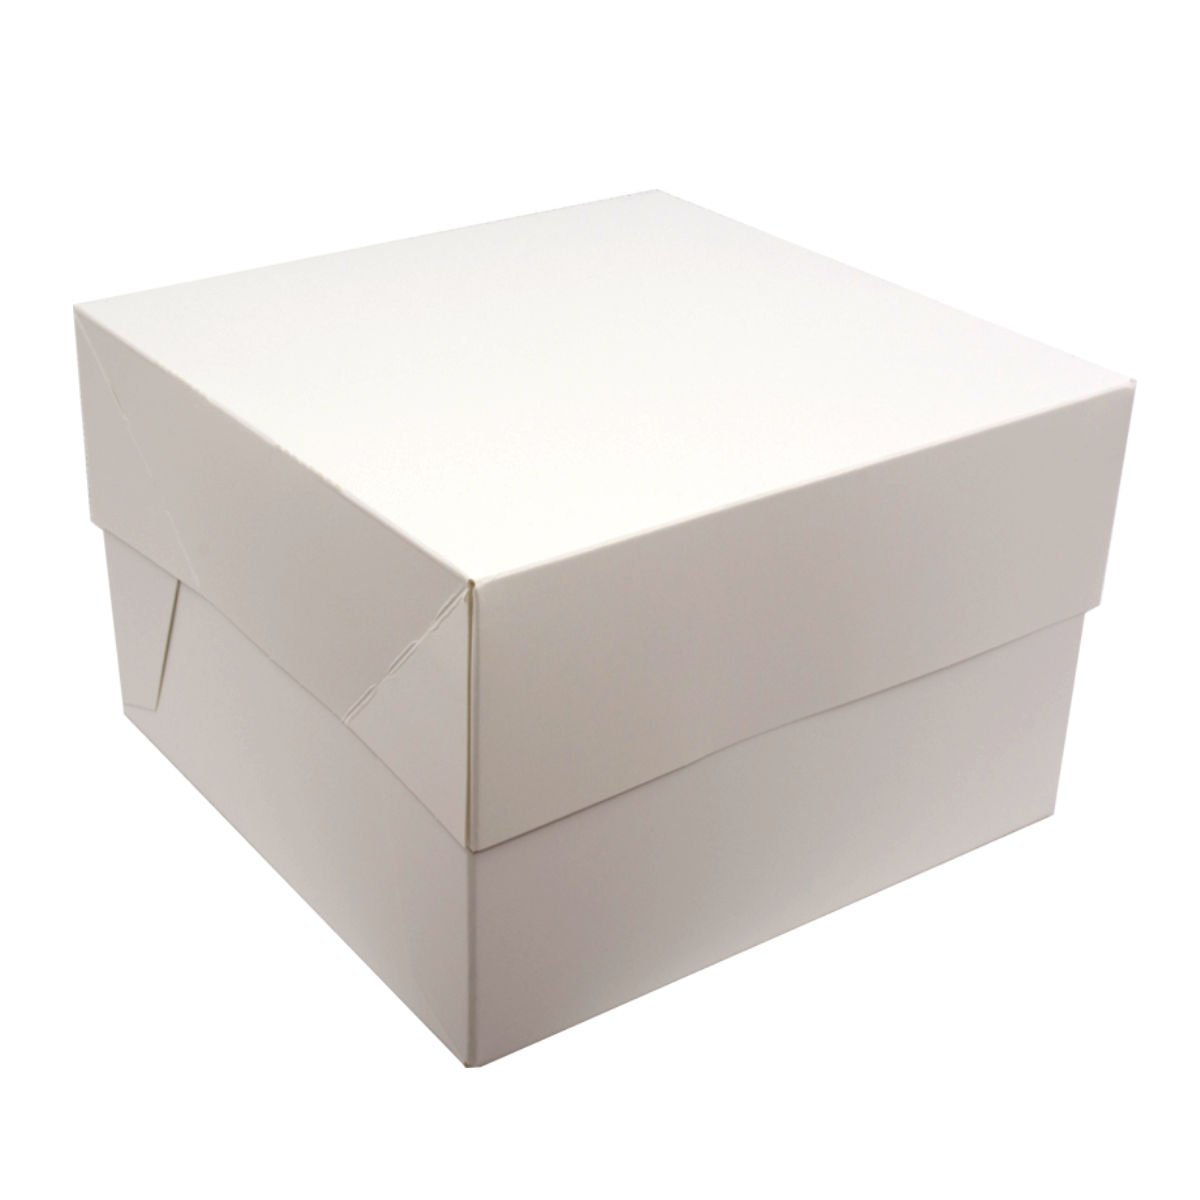 White SQUARE Cake BOXES - PACKS OF 5 - perfect for transporting your creations! (12 Inch) by Reynards: Amazon.es: Hogar